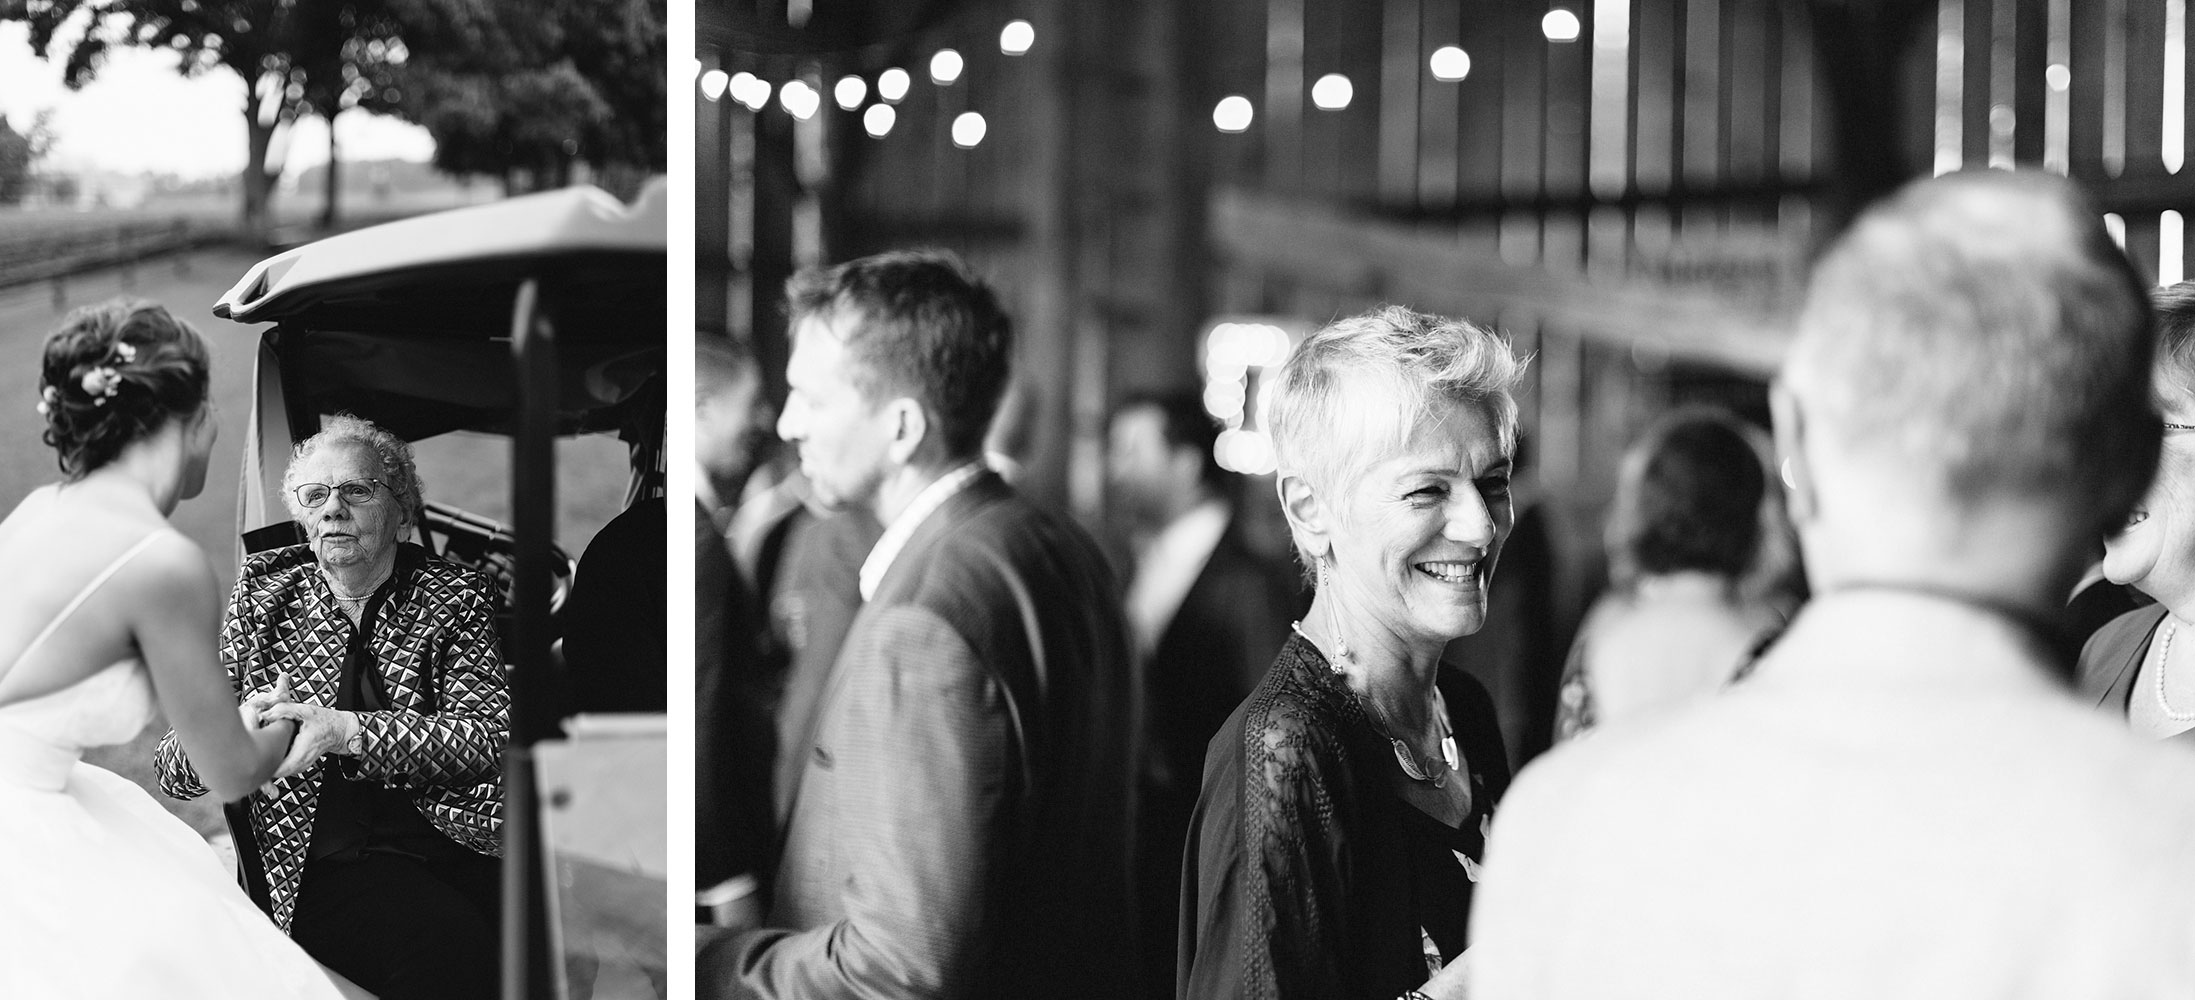 Editorial-Toronto-Wedding-Photographers-Photojournalistic-Wedding-Photography-in-Toronto-Ryanne-Hollies-Photography-candid-documentary-bradford-barn-wedding-venue-inspiration-cocktail-hour-guests-candid-laughing.jpg